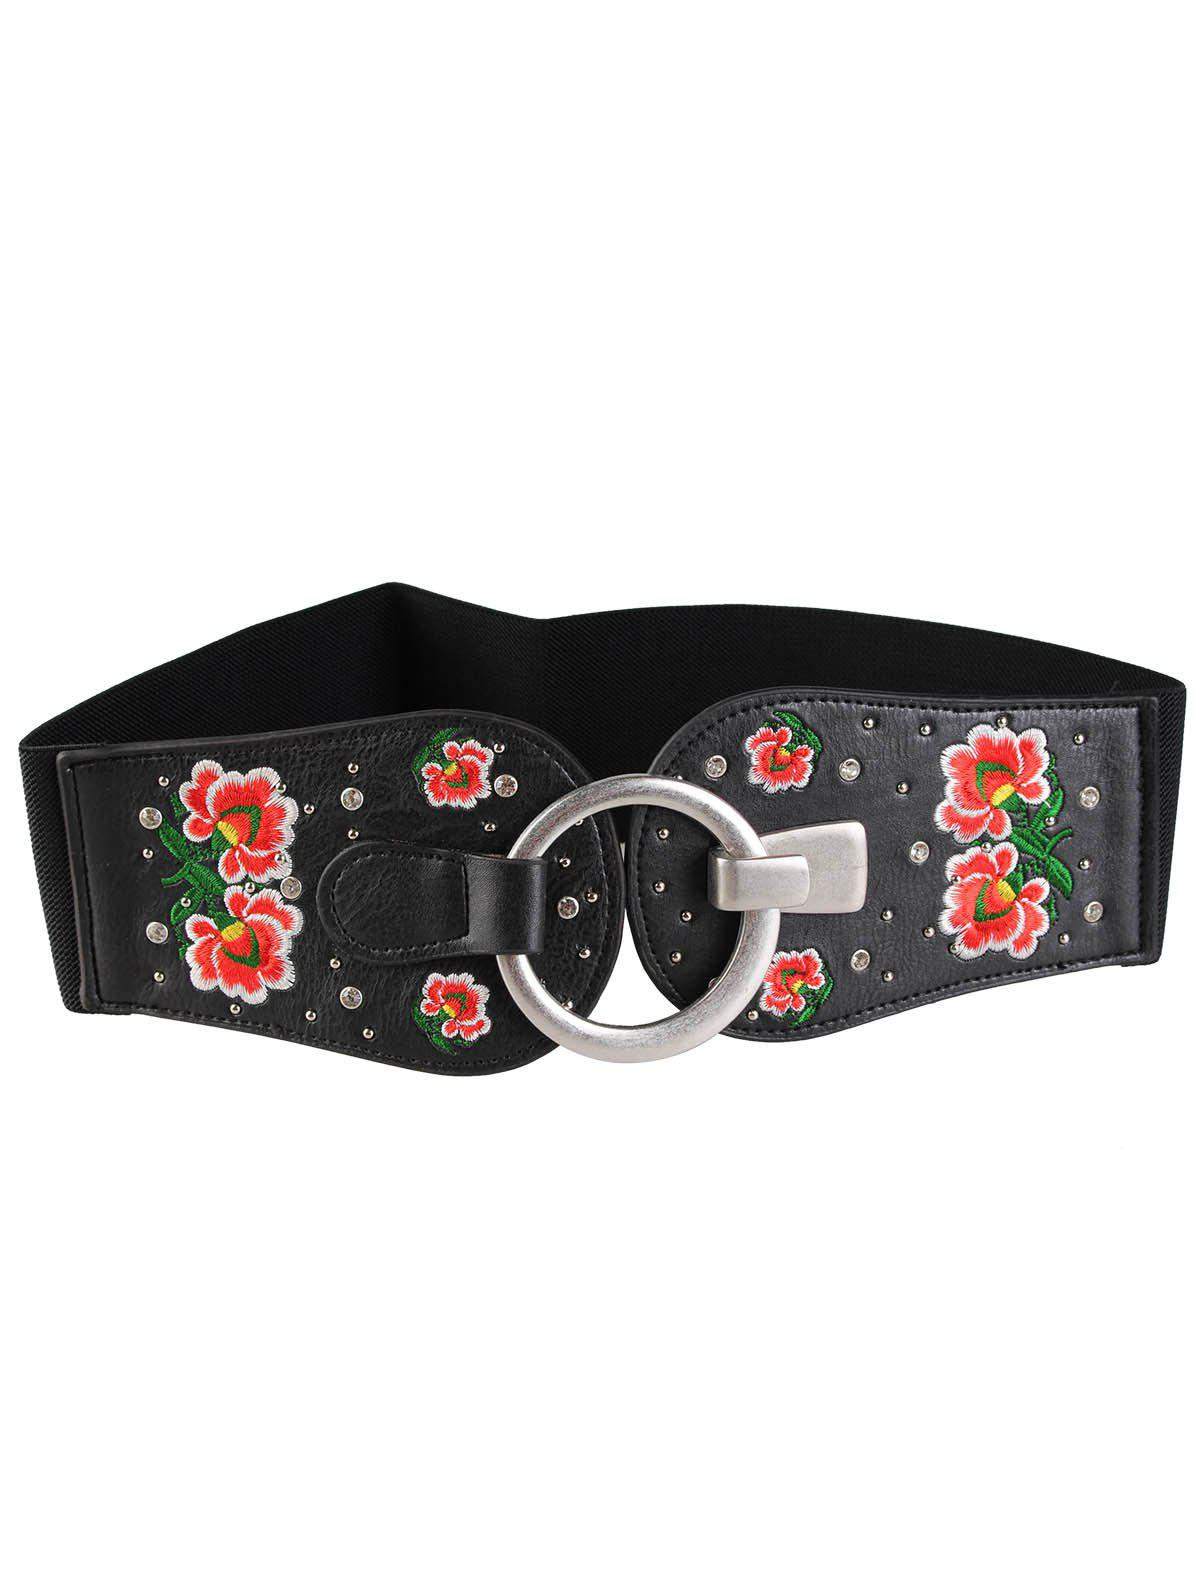 Shops Vintage Round Buckle Embellished Floral Embroidery Wide Waist Belt